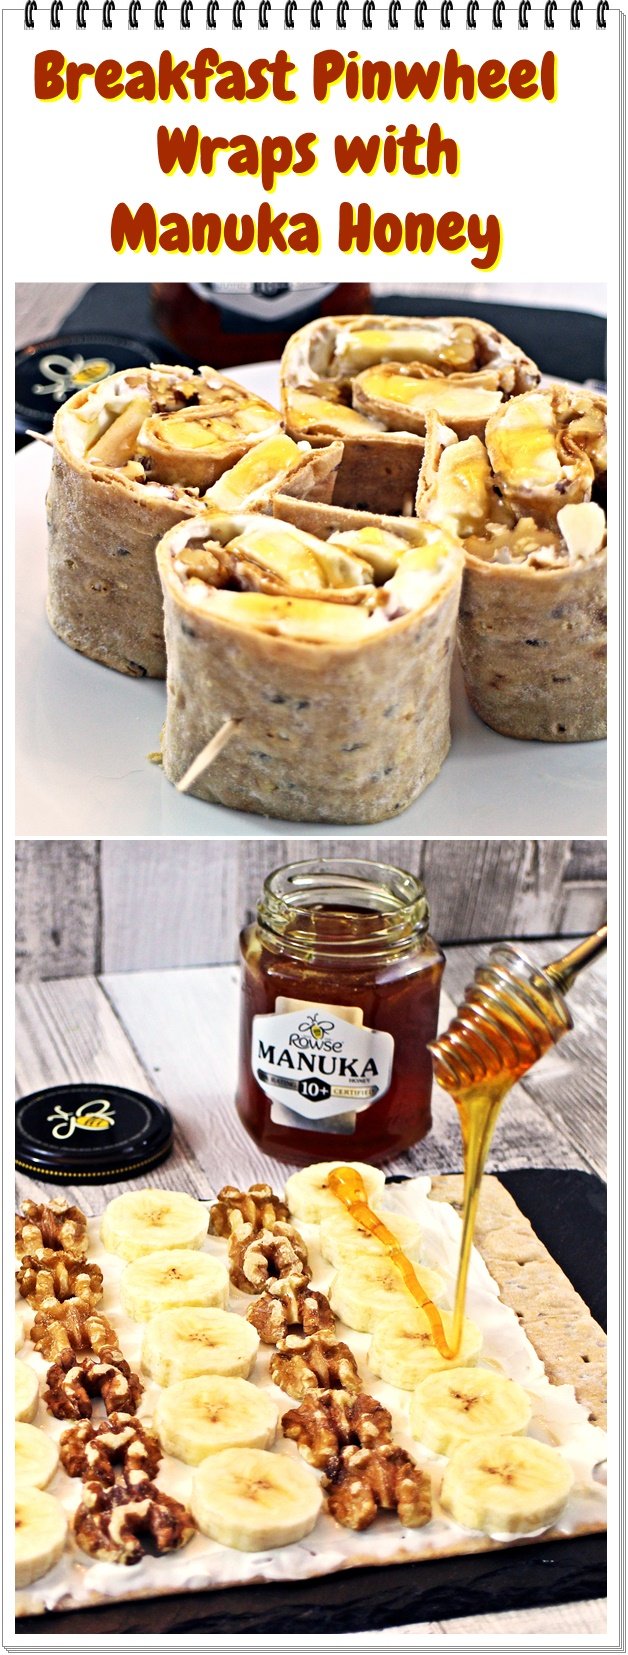 Breakfast Pinwheel Wraps with Manuka Honey - Fab Food 4 All